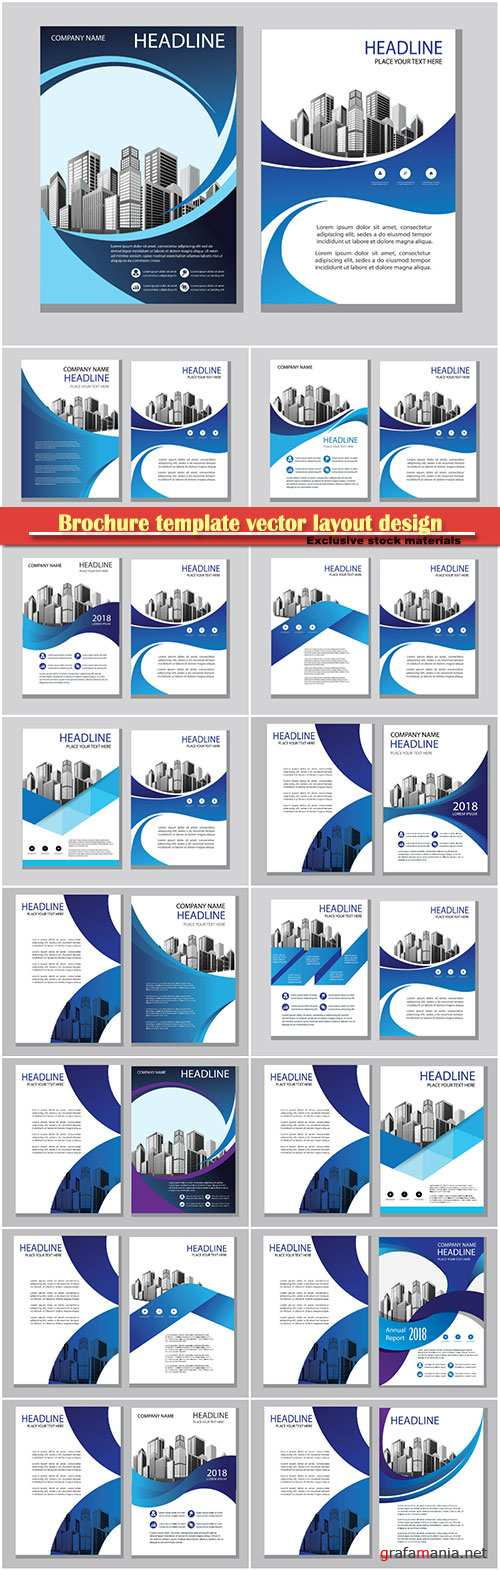 Brochure template vector layout design, corporate business annual report, magazine, flyer mockup # 141